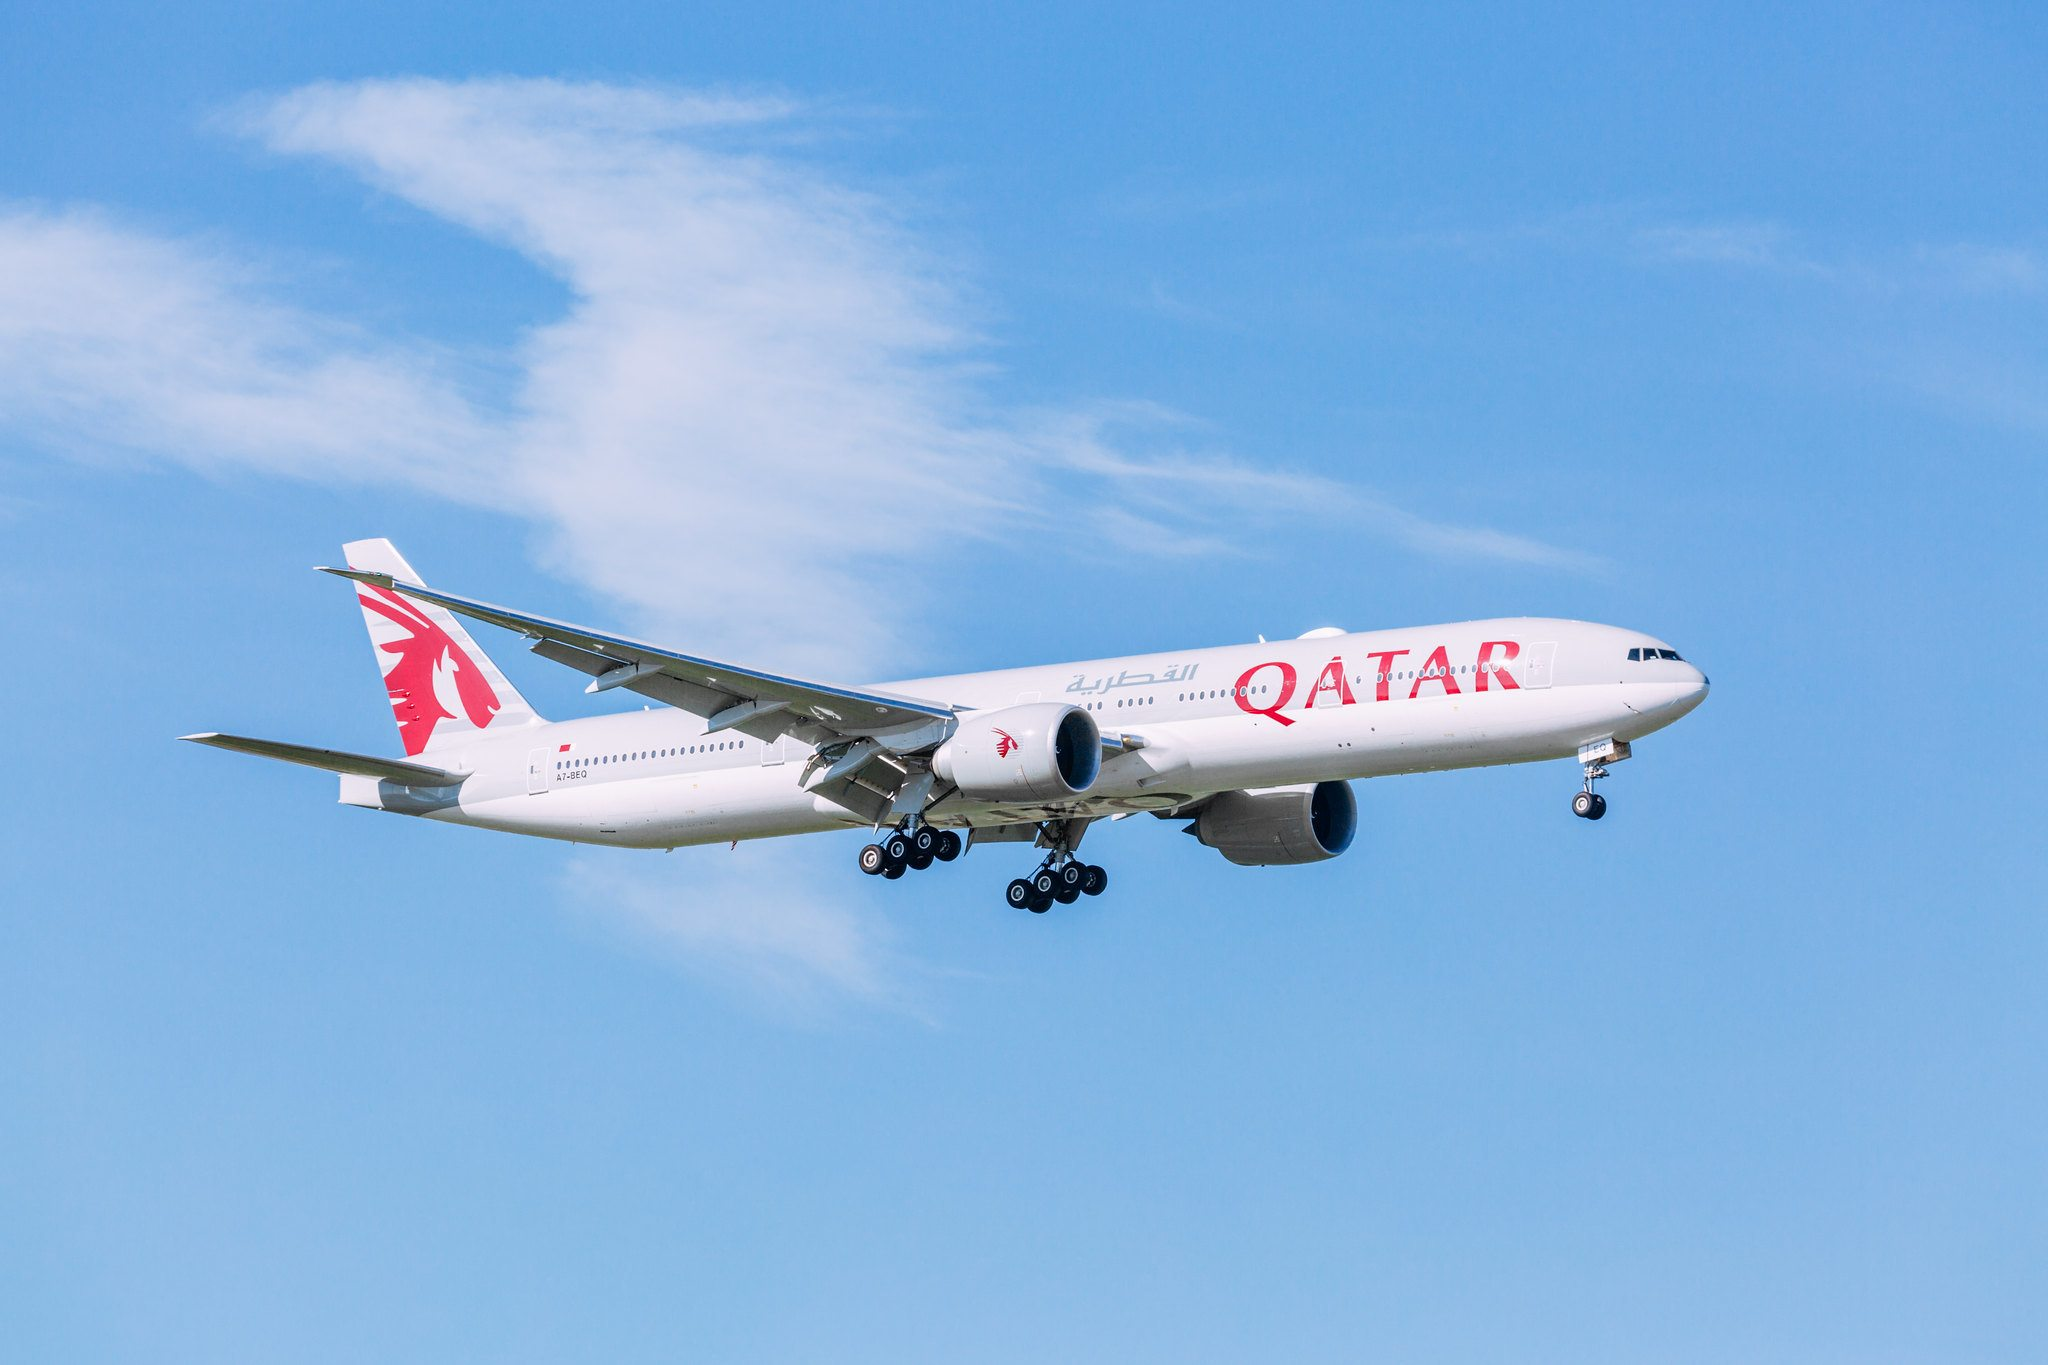 Step by Step Guide on How to Change Flights or Get Refunds on Qatar Airways